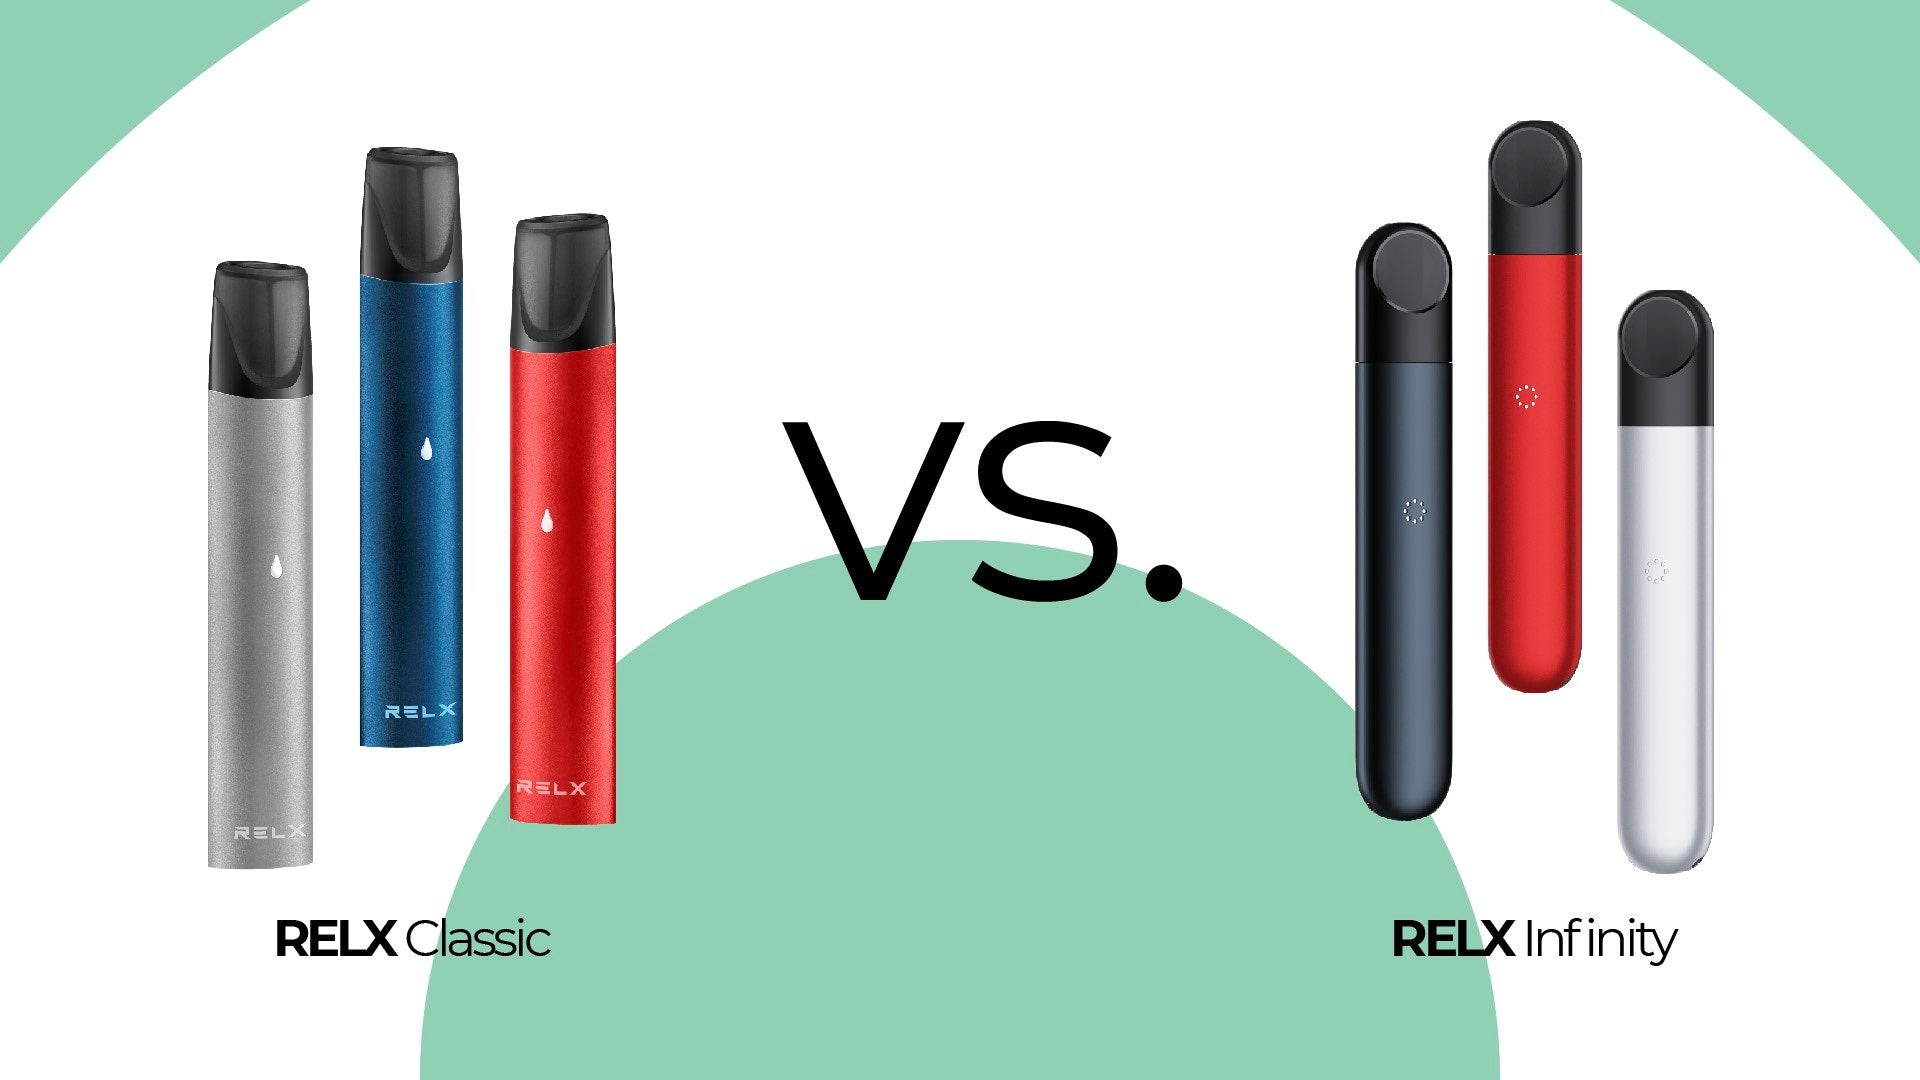 RELX Classic vs. RELX Infinity: Which Should You Choose?